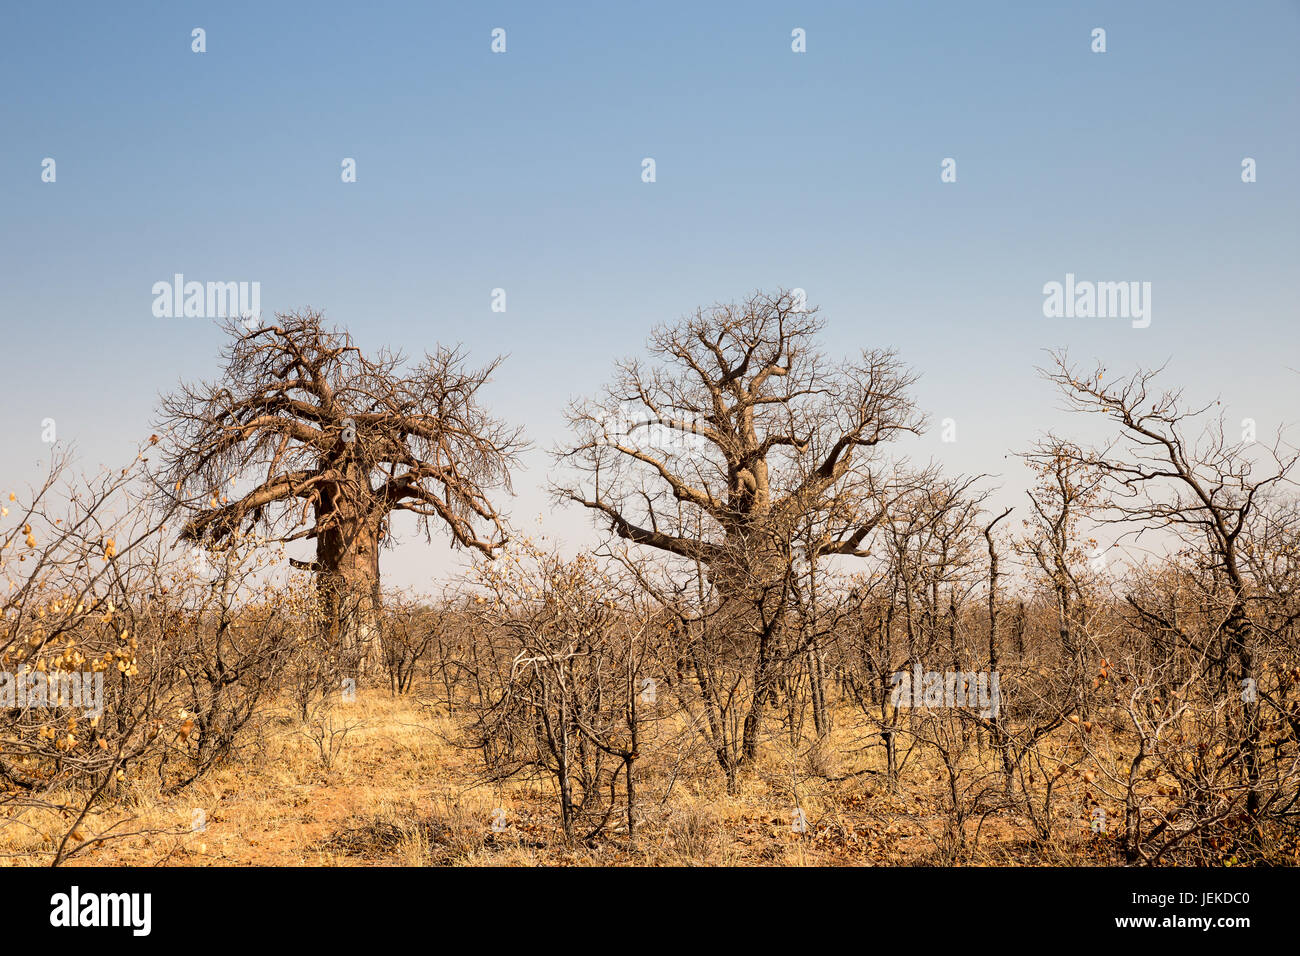 zwei gro e baobab b ume in der w ste landschaft von mapungubwe national park s dafrika afrika. Black Bedroom Furniture Sets. Home Design Ideas